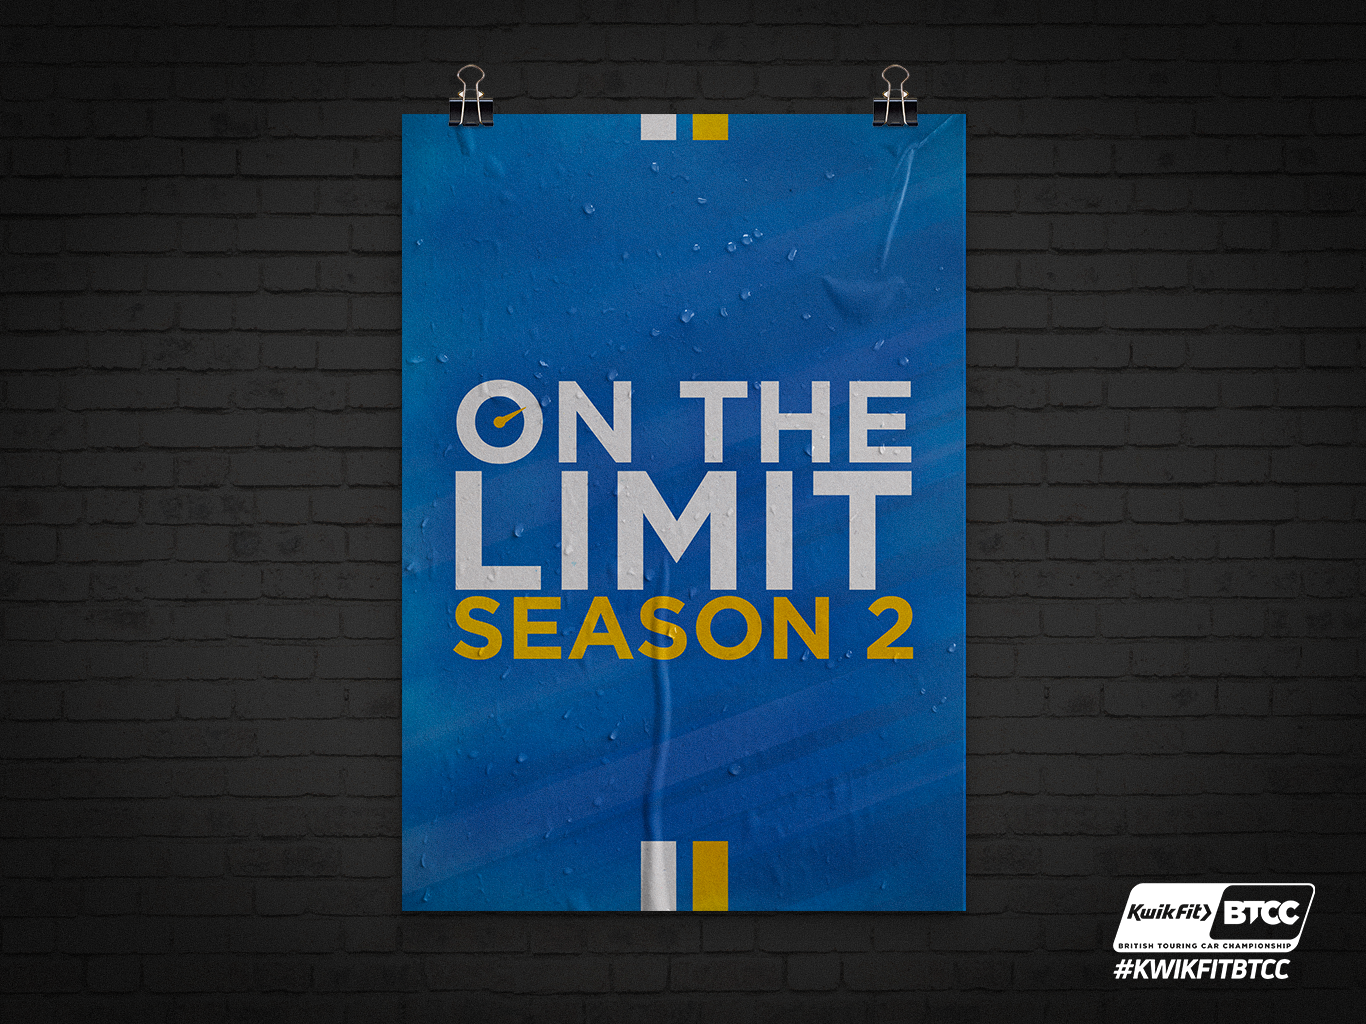 On the Limit Season 2 featured